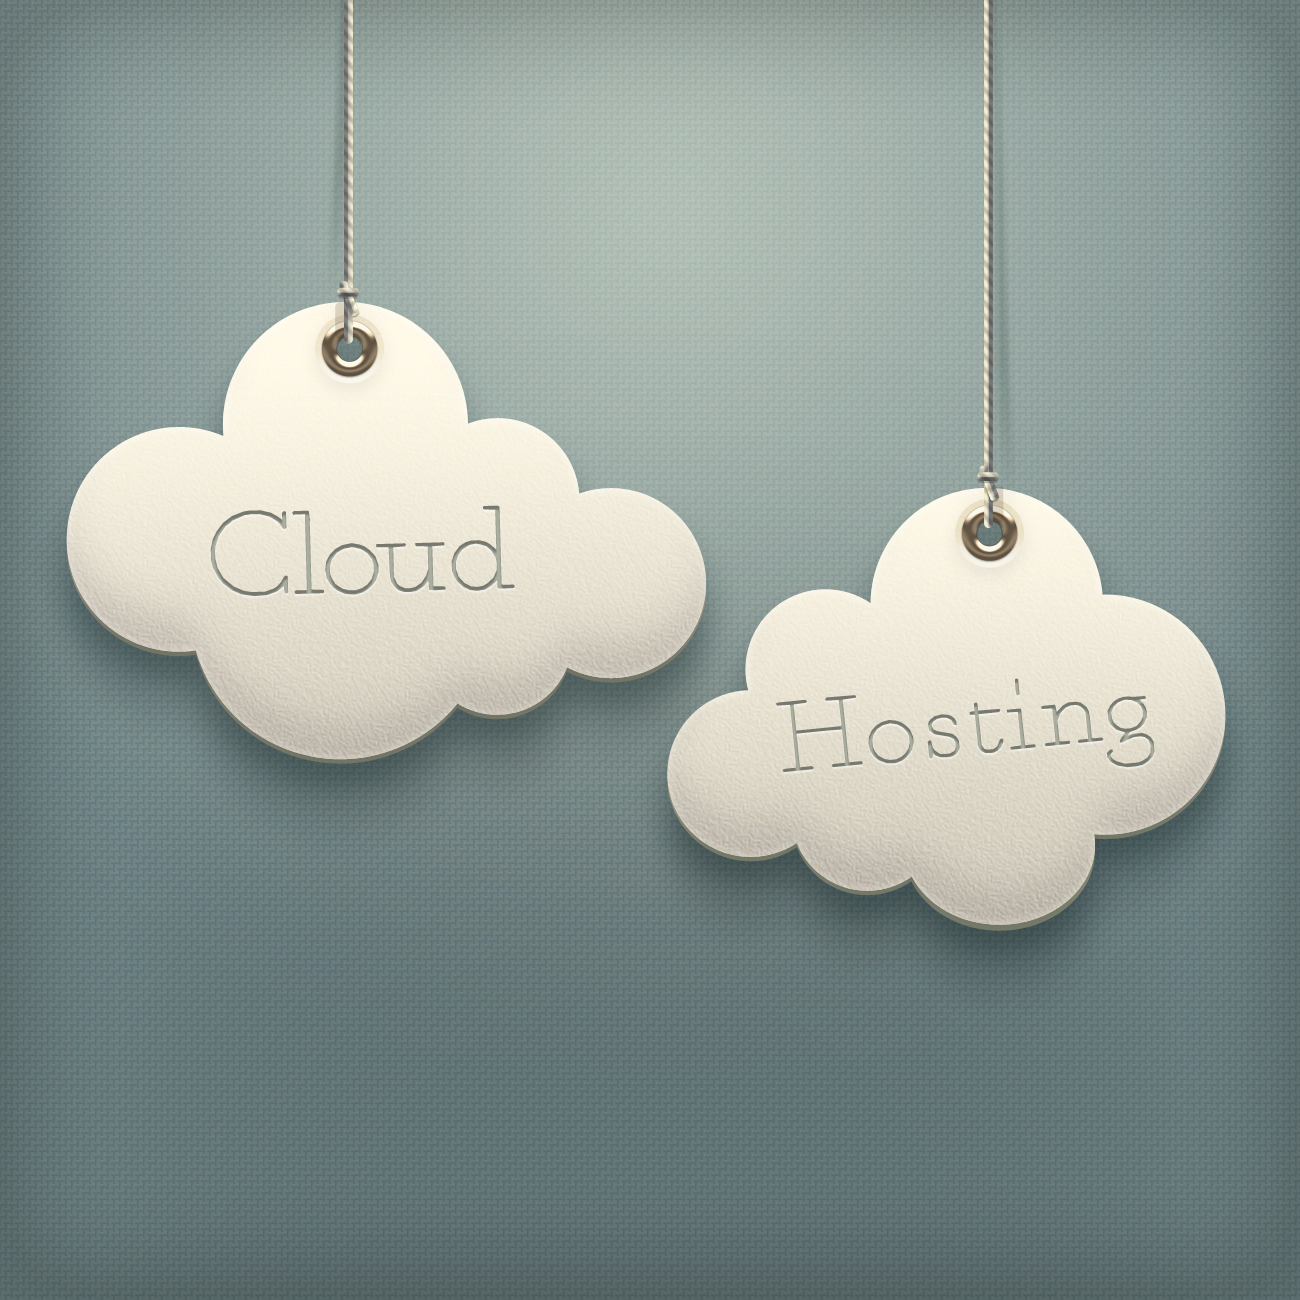 To be, or not to be...in the Cloud